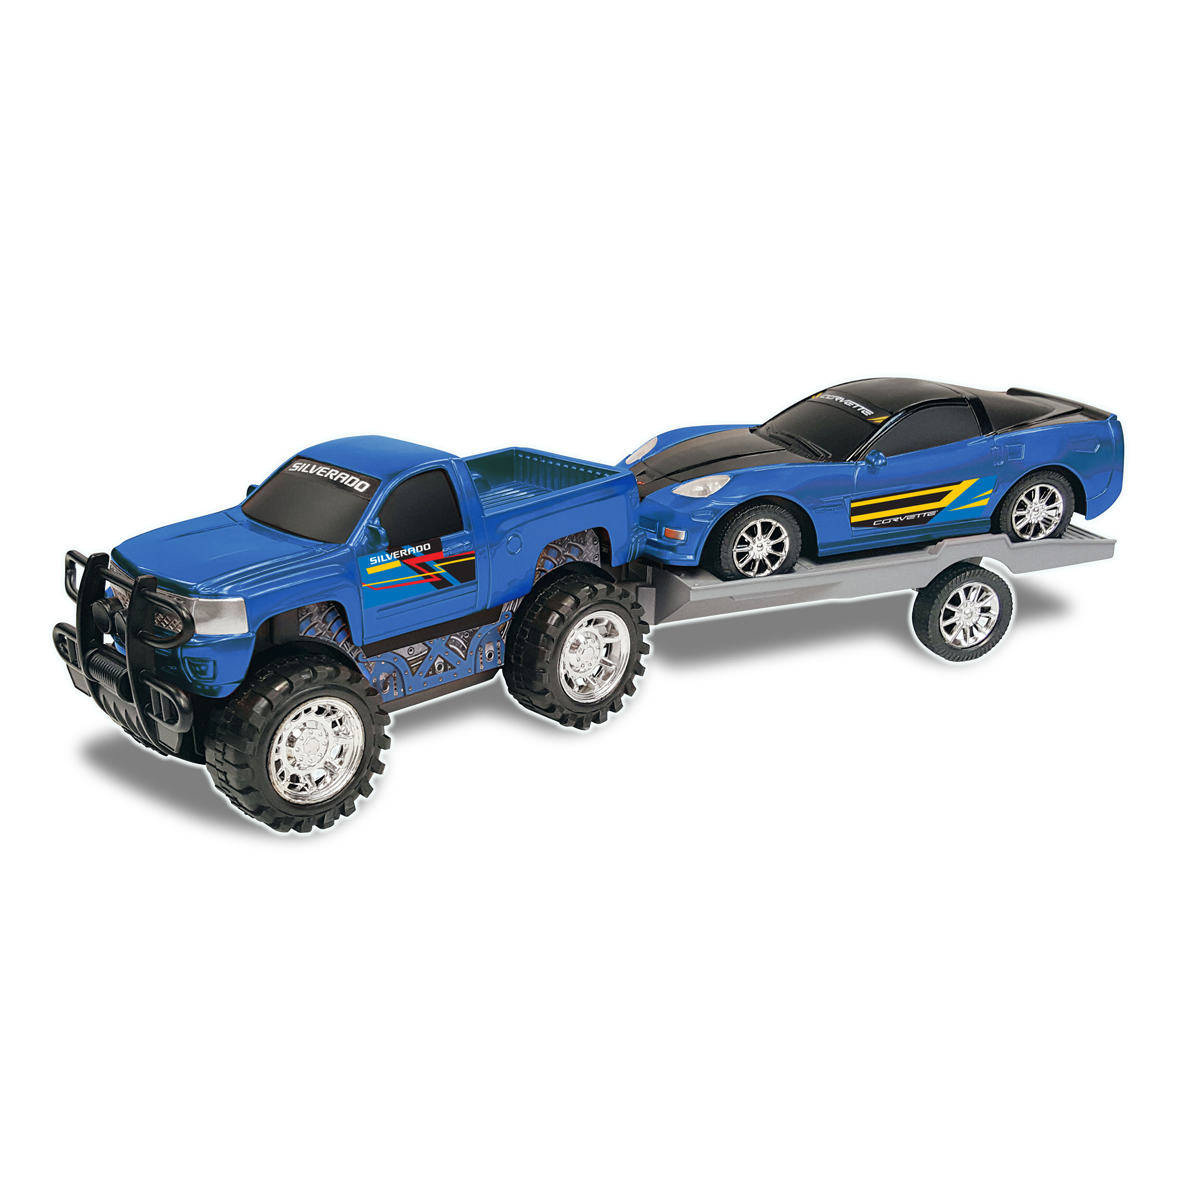 Truck and Trailer - Blue